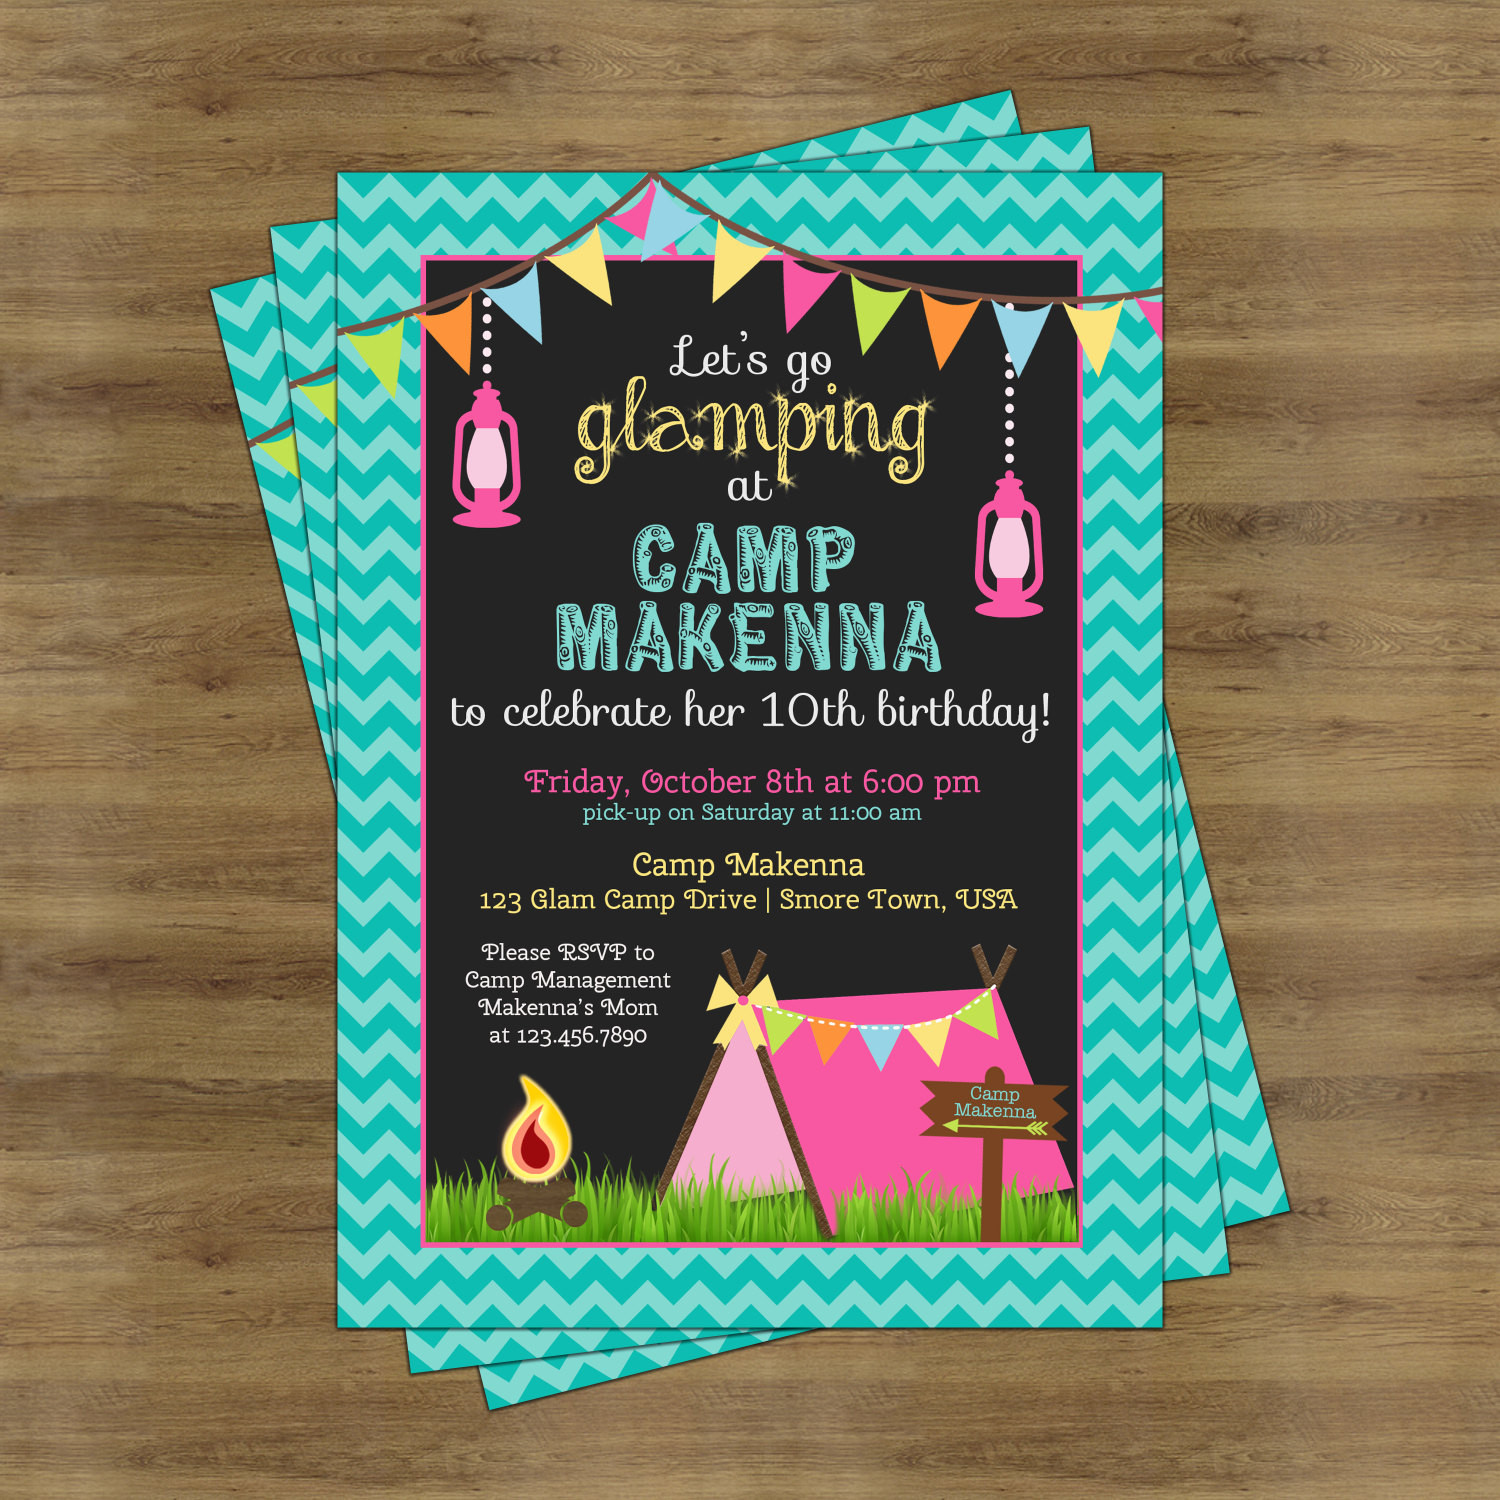 Best ideas about Camping Birthday Party Invitations . Save or Pin Glamping Party Invitation Camping Birthday Invitation for Now.